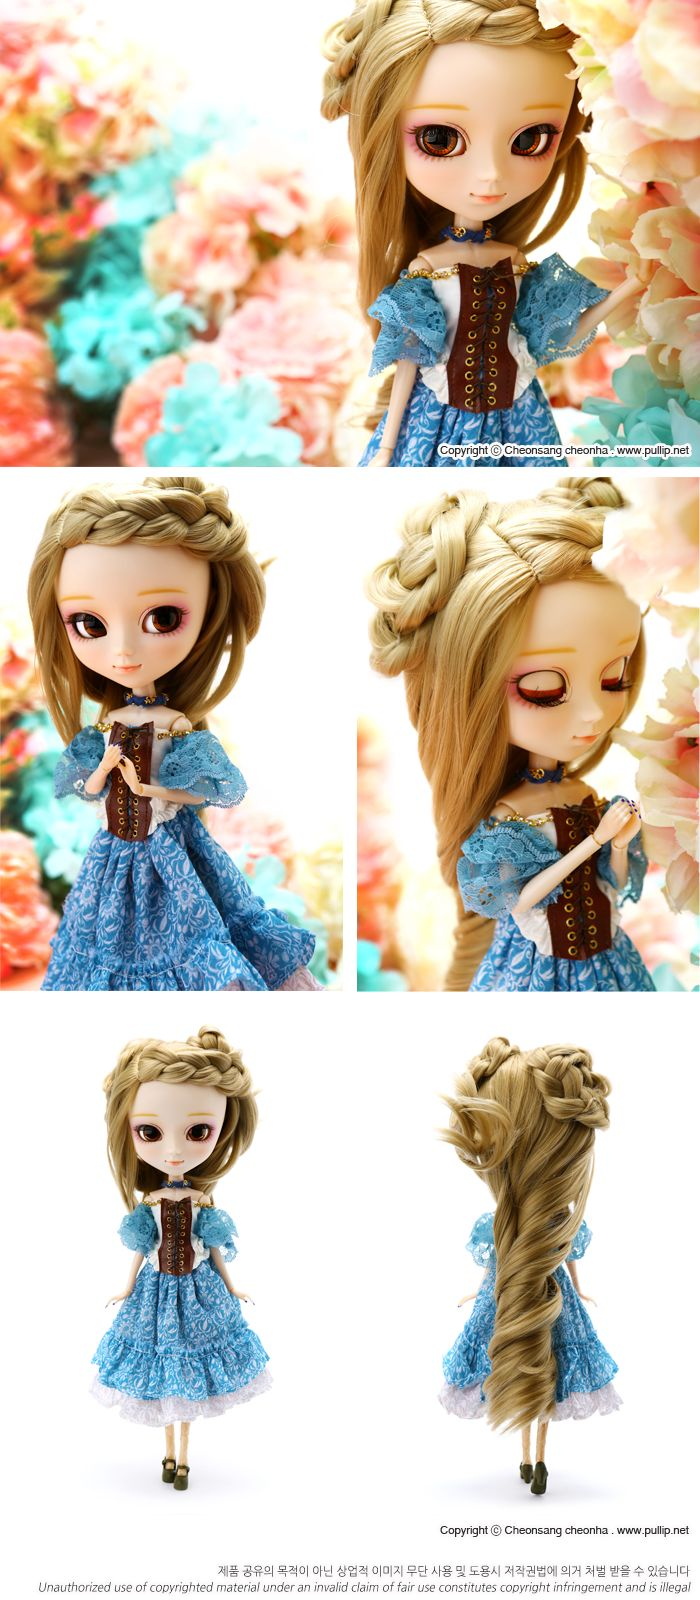 Pullip 'Hino' - World of Pullip :::::::::::::::::::::::::